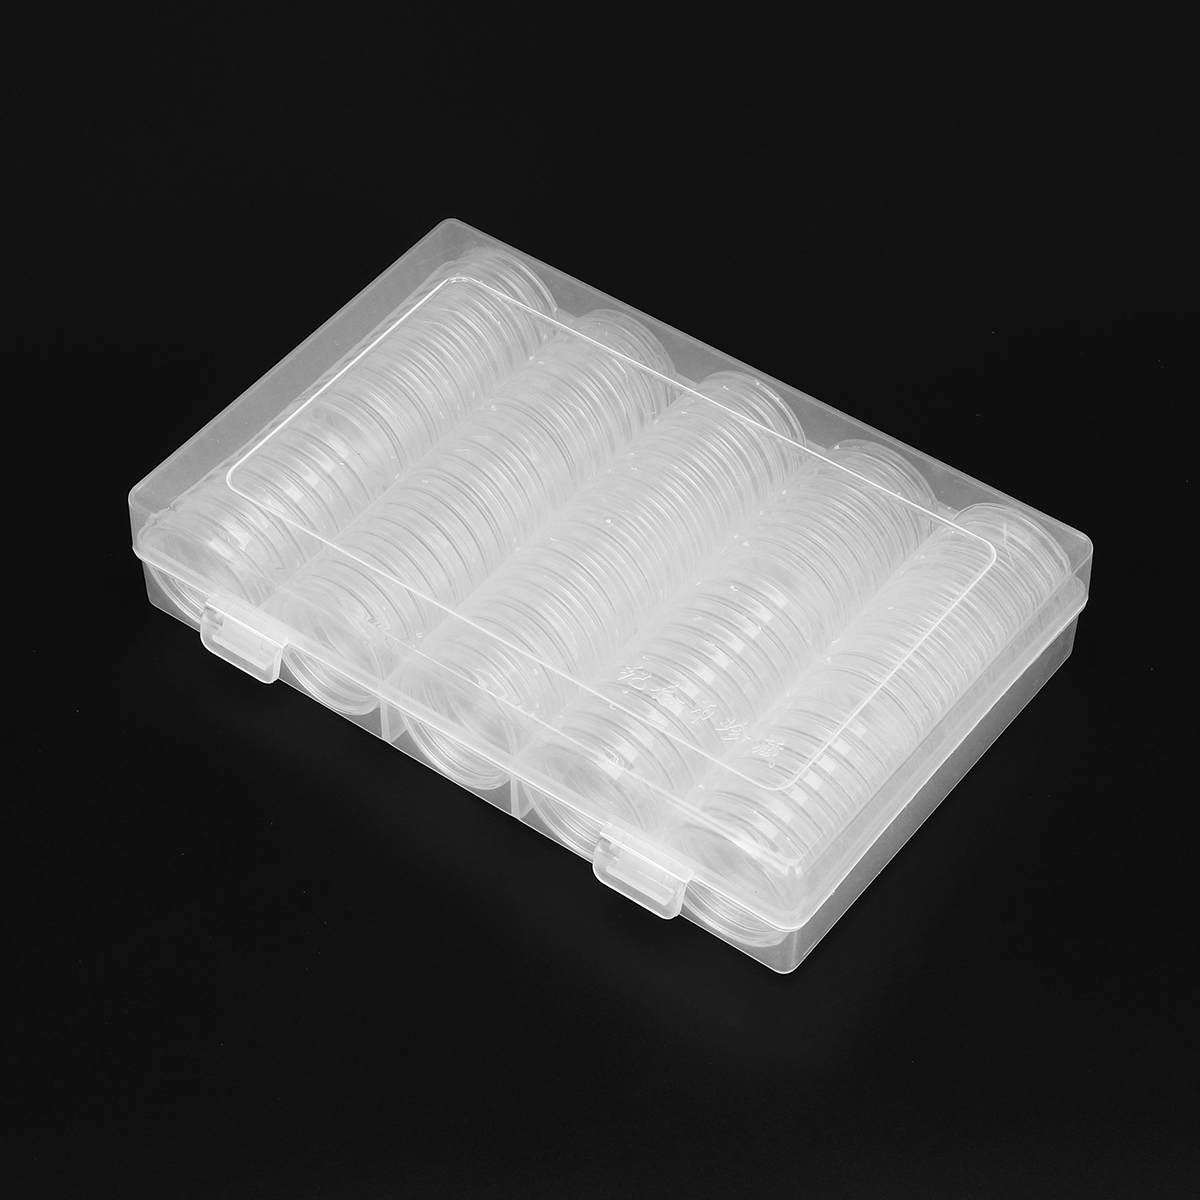 100Pcs Clear Round Coin Case Capsule Container Coin Holder Storage Box For 25/27/30mm